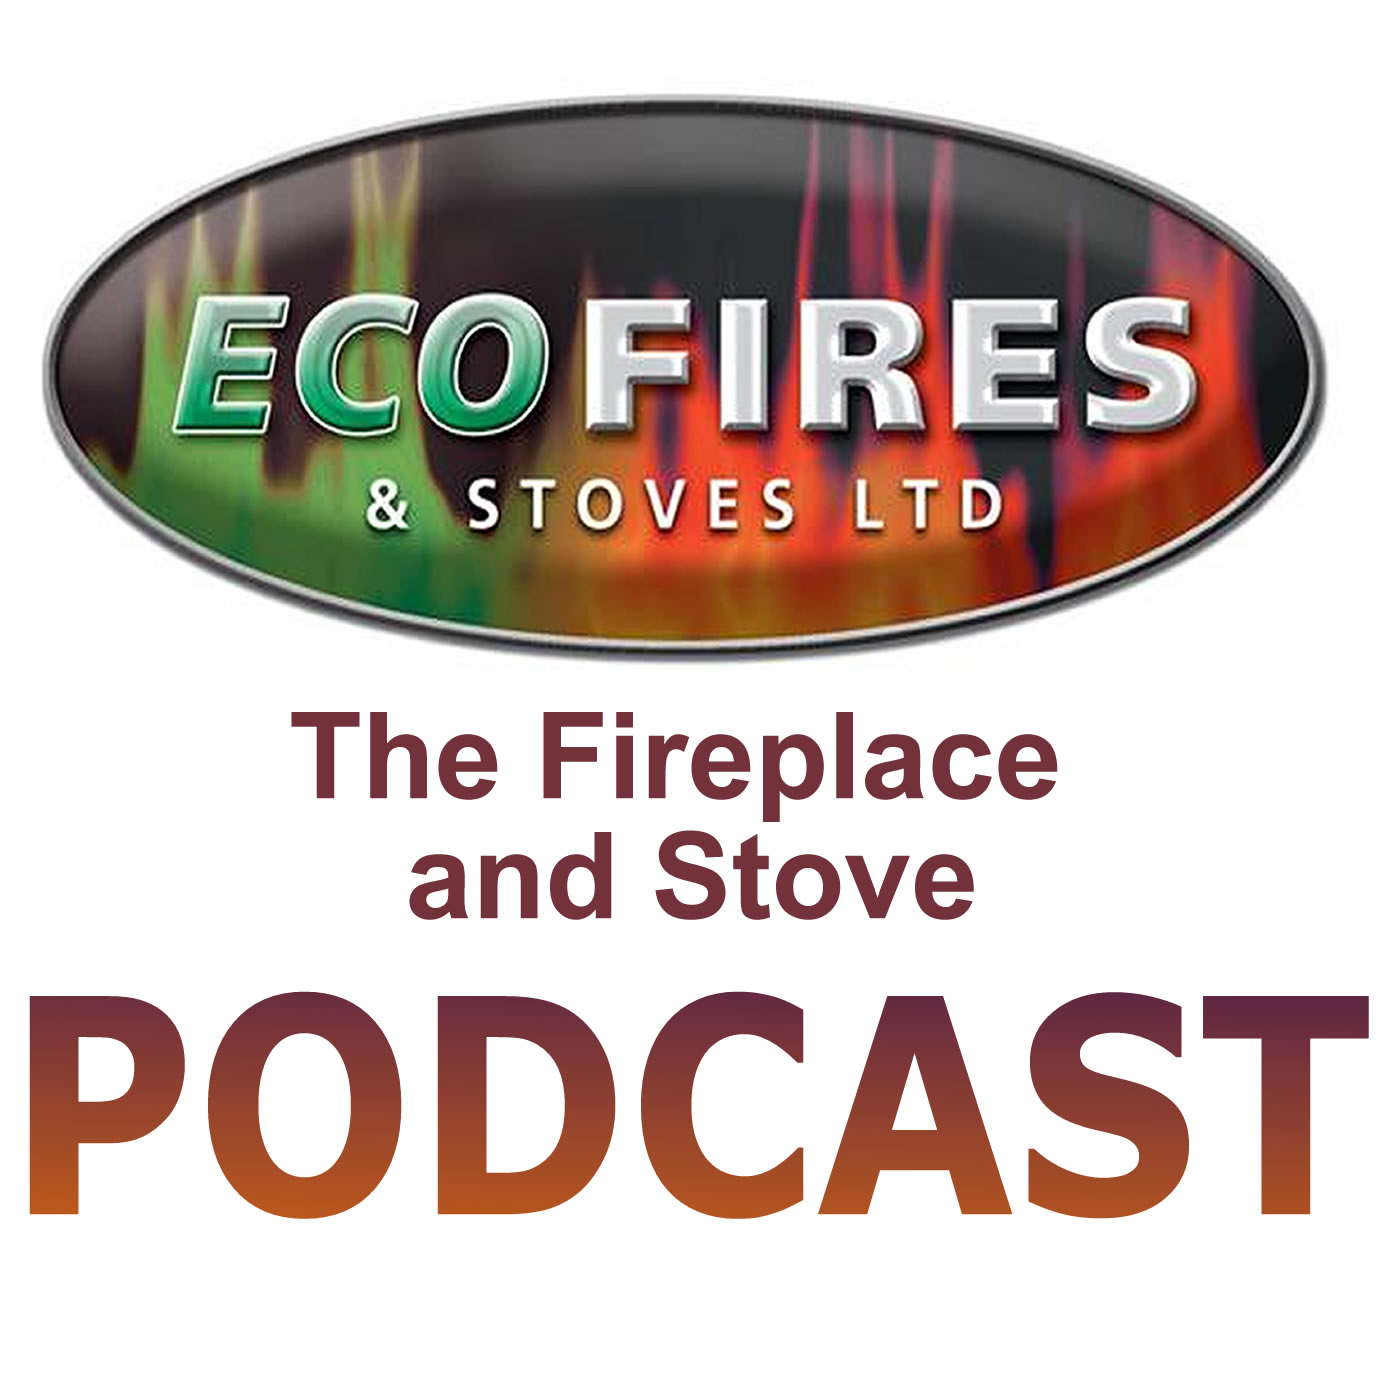 The Fireplace and Stove Podcast